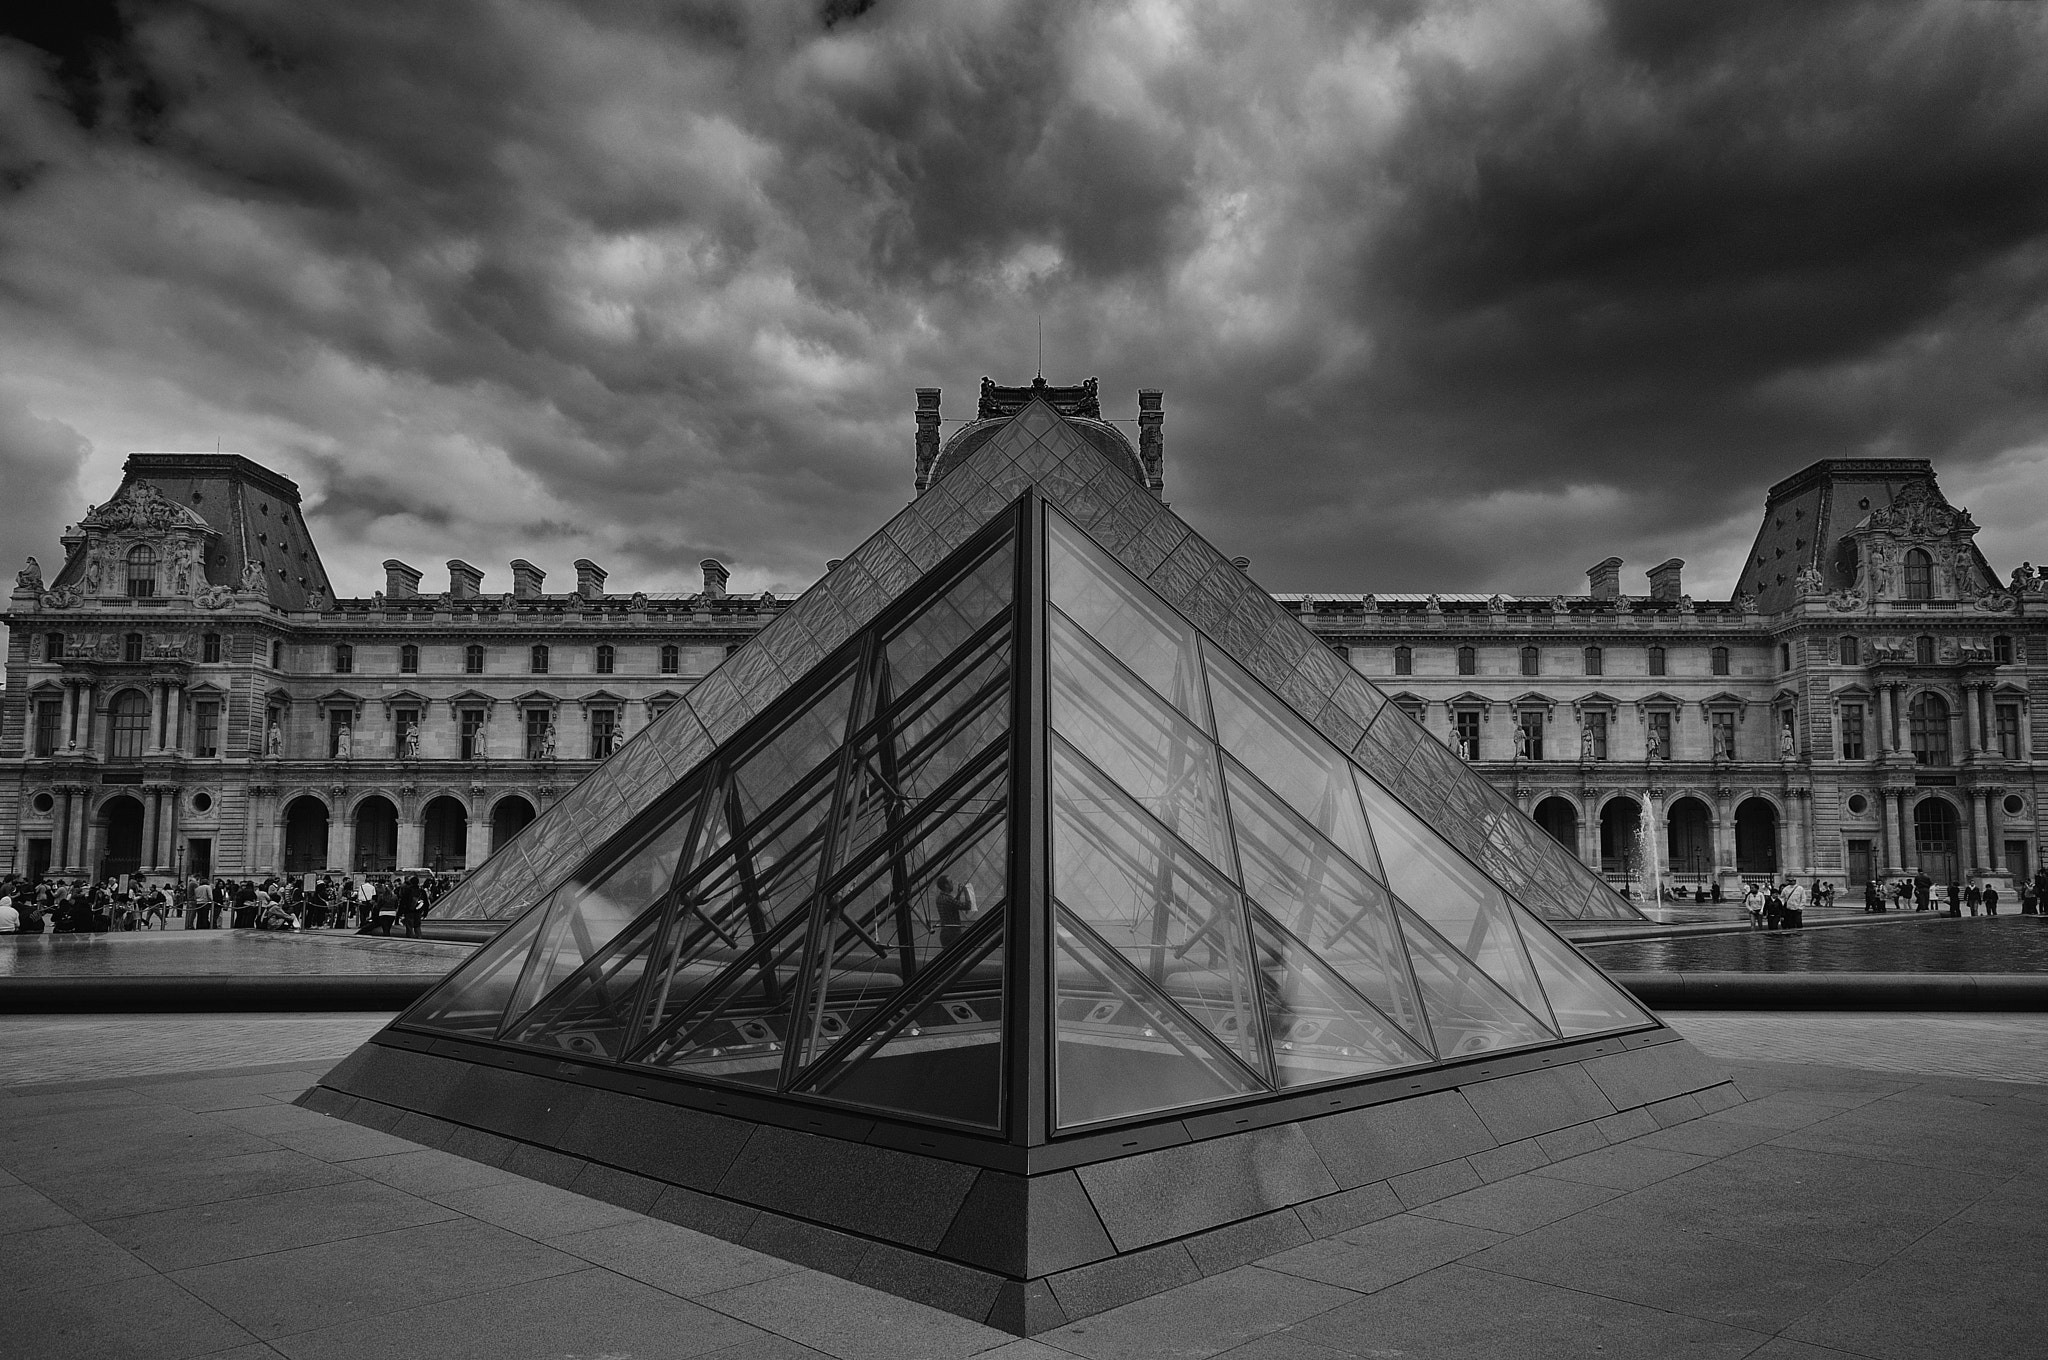 Photograph Louvre by Vetbonkie on 500px